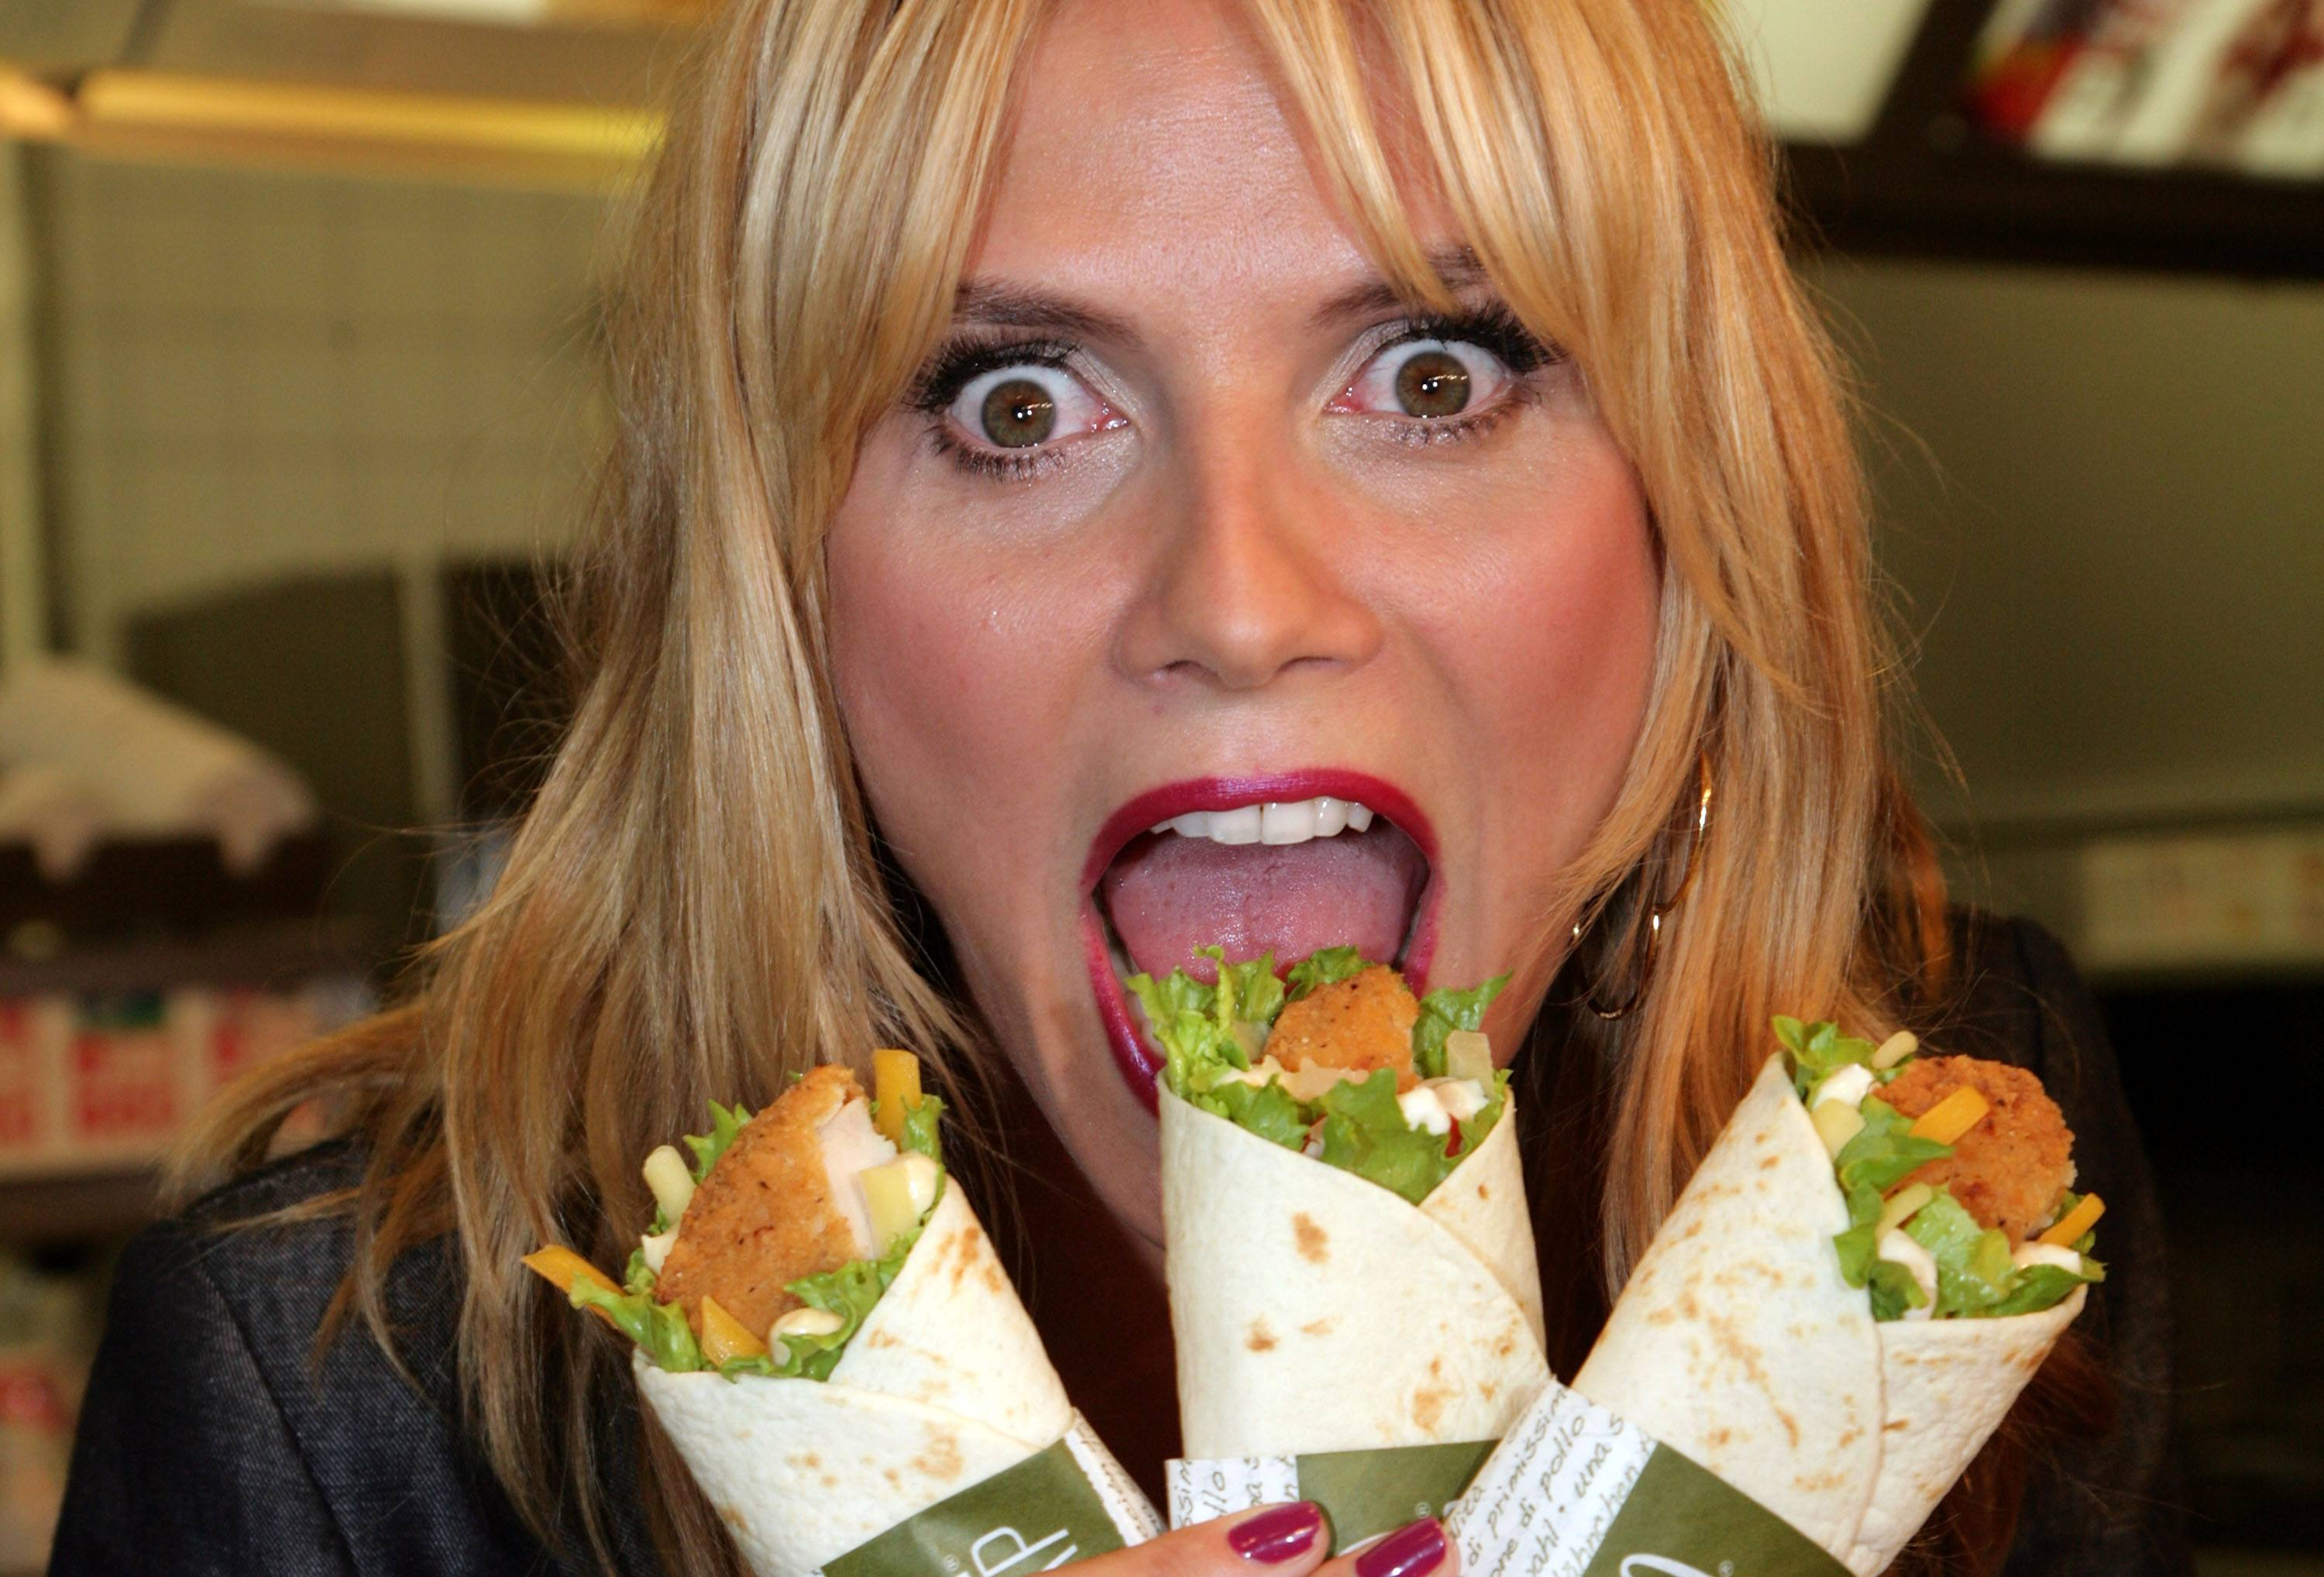 Heidi Klum with snack wraps